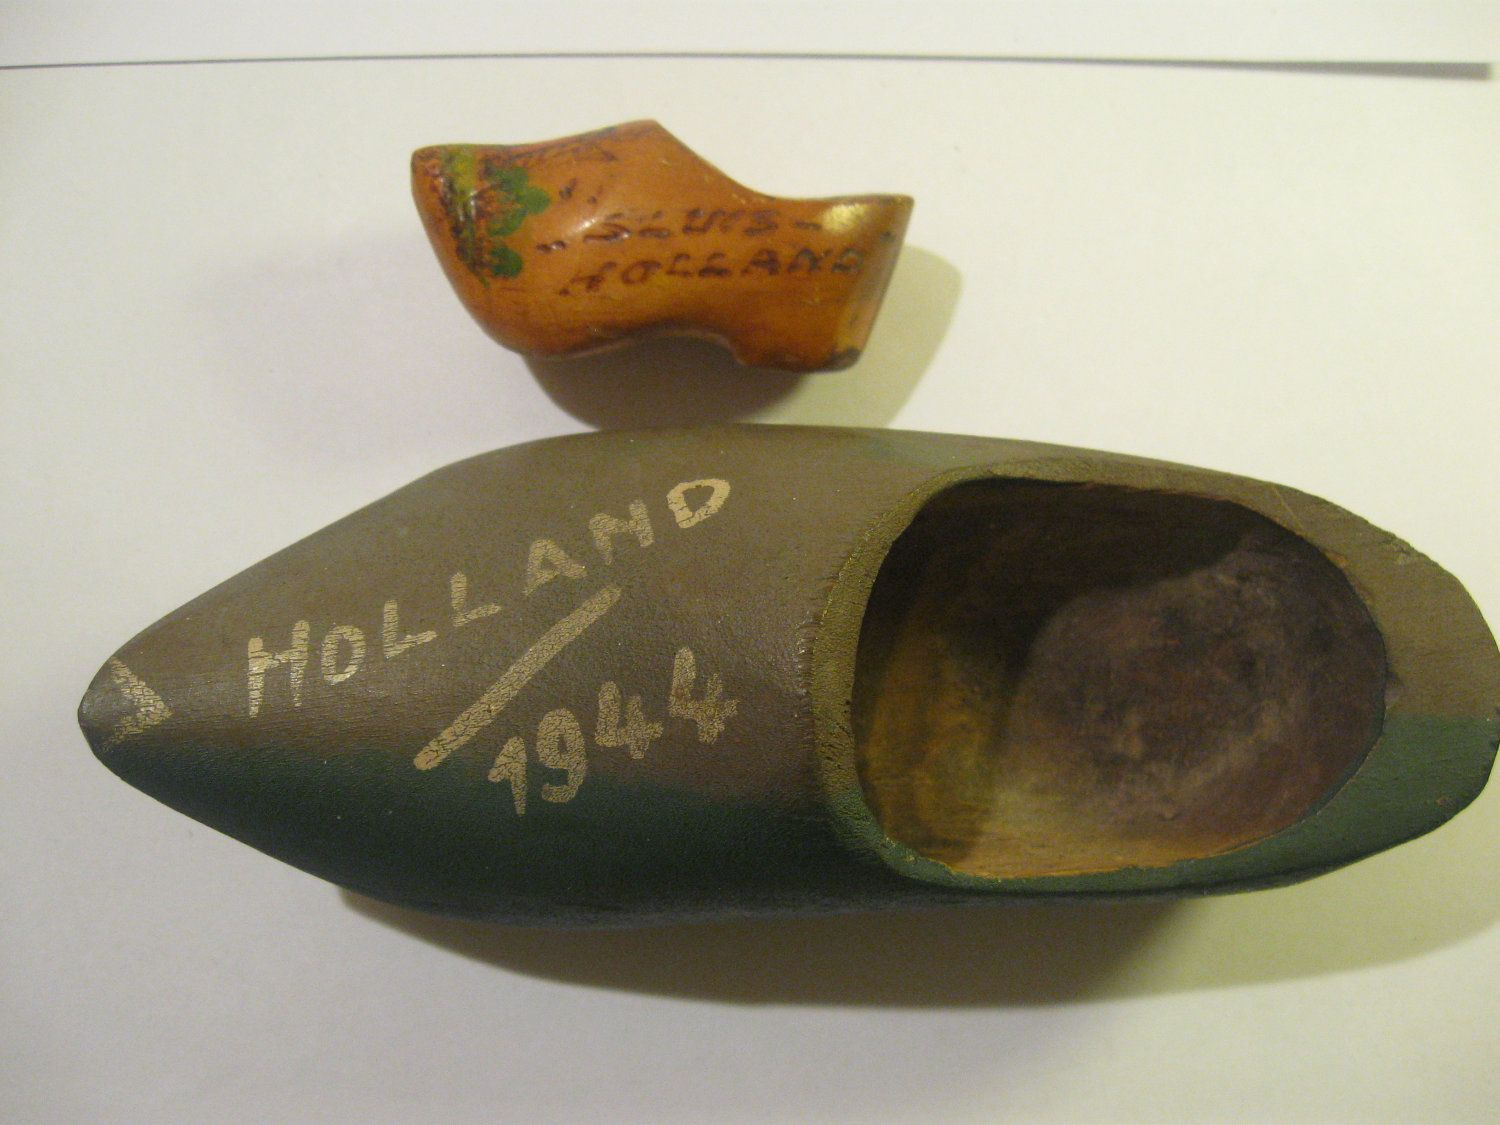 vintage 1944 sabot wooden shoe from holland wooden shoes